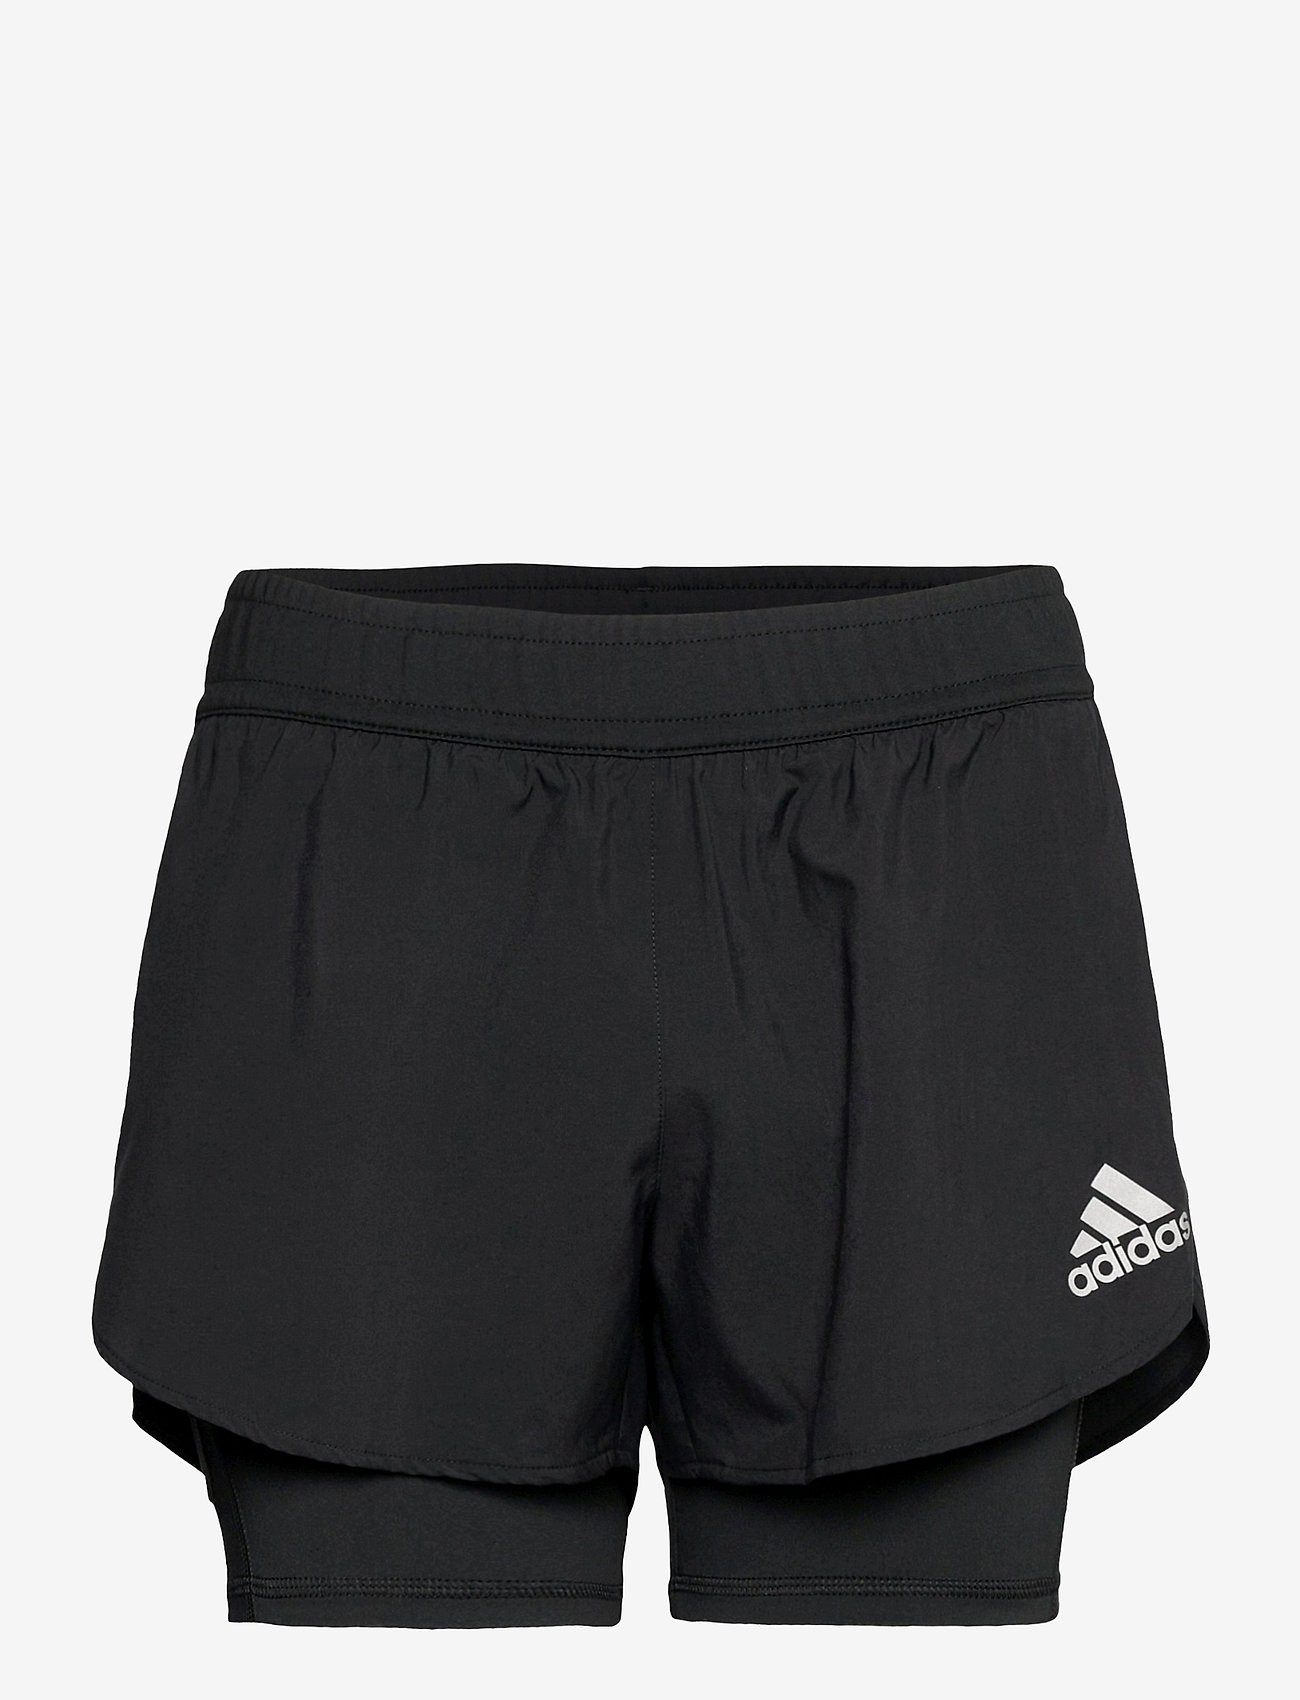 adidas Performance - Fast Primeblue Two-In-One Shorts W - træningsshorts - black - 1